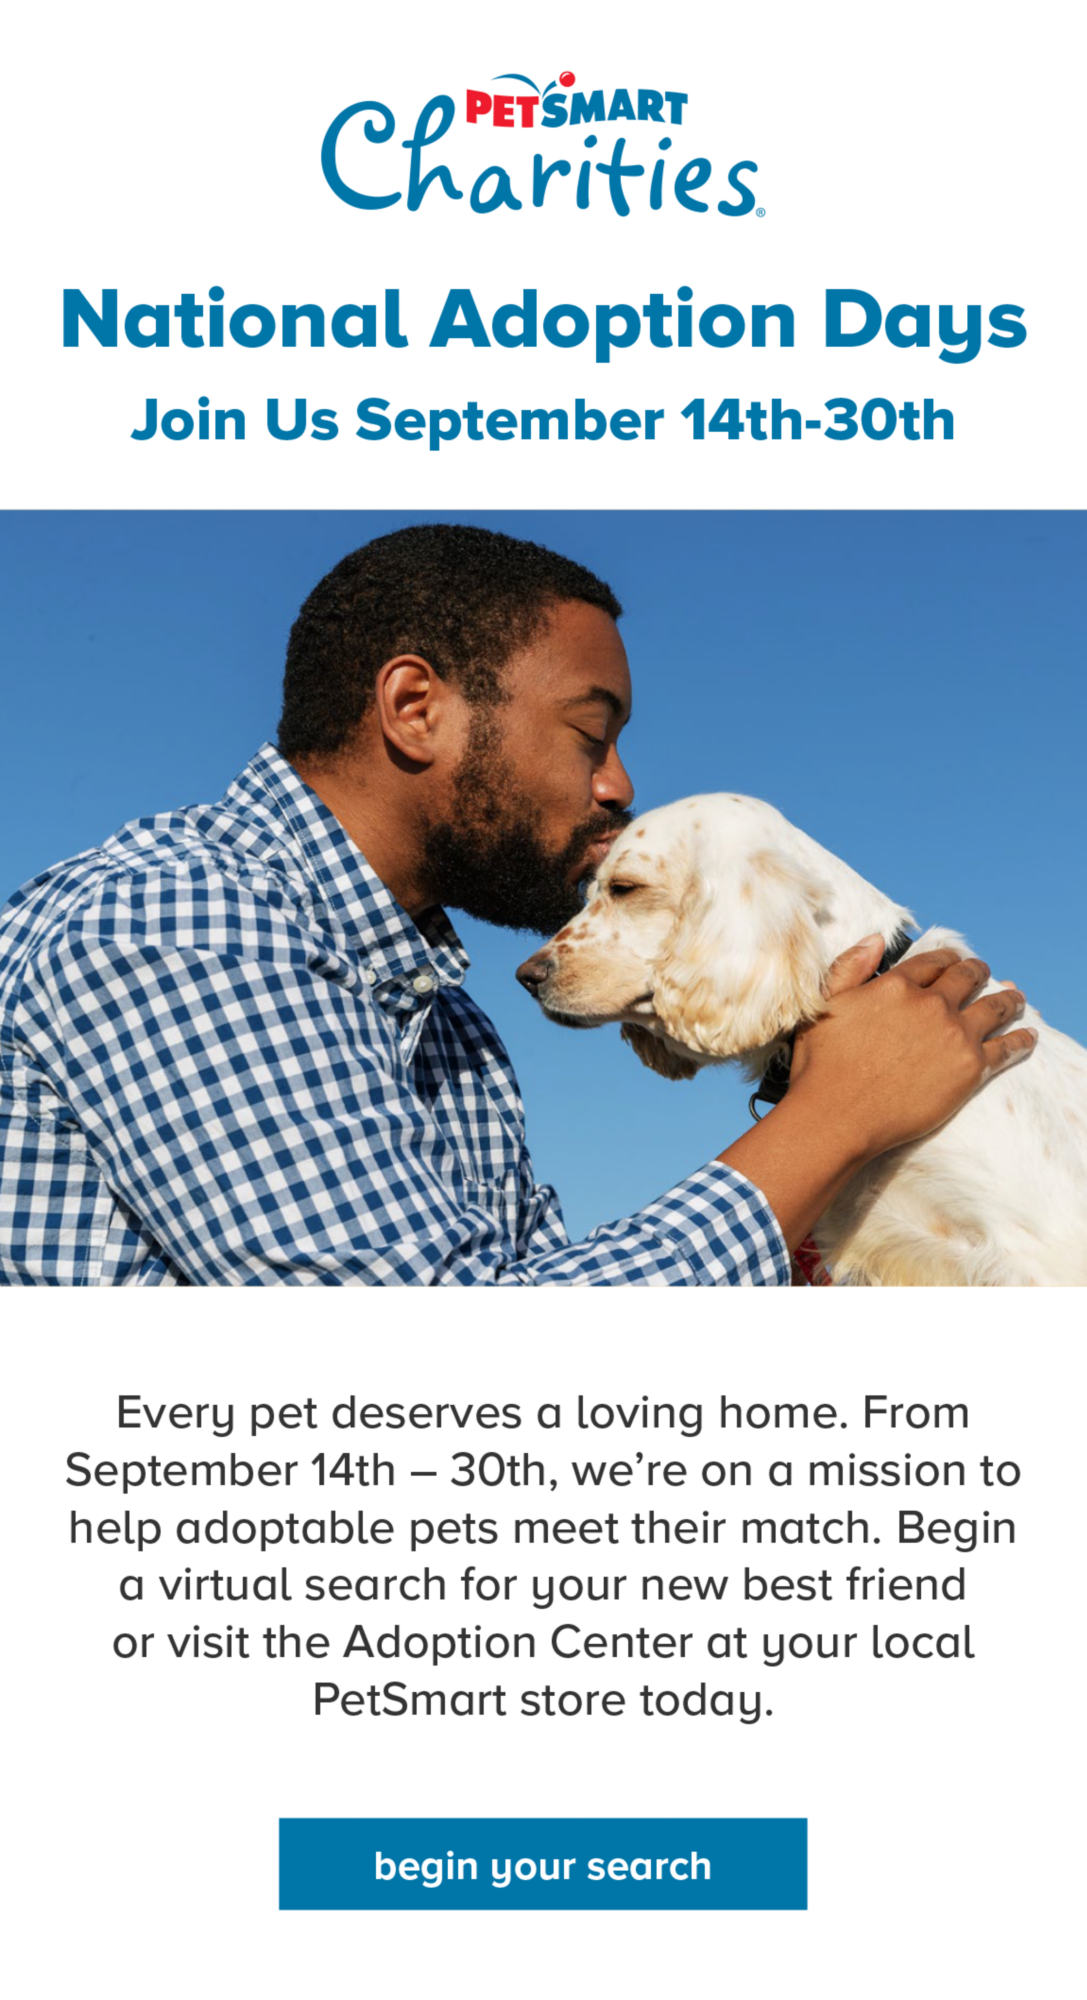 Petsmart Charities Page